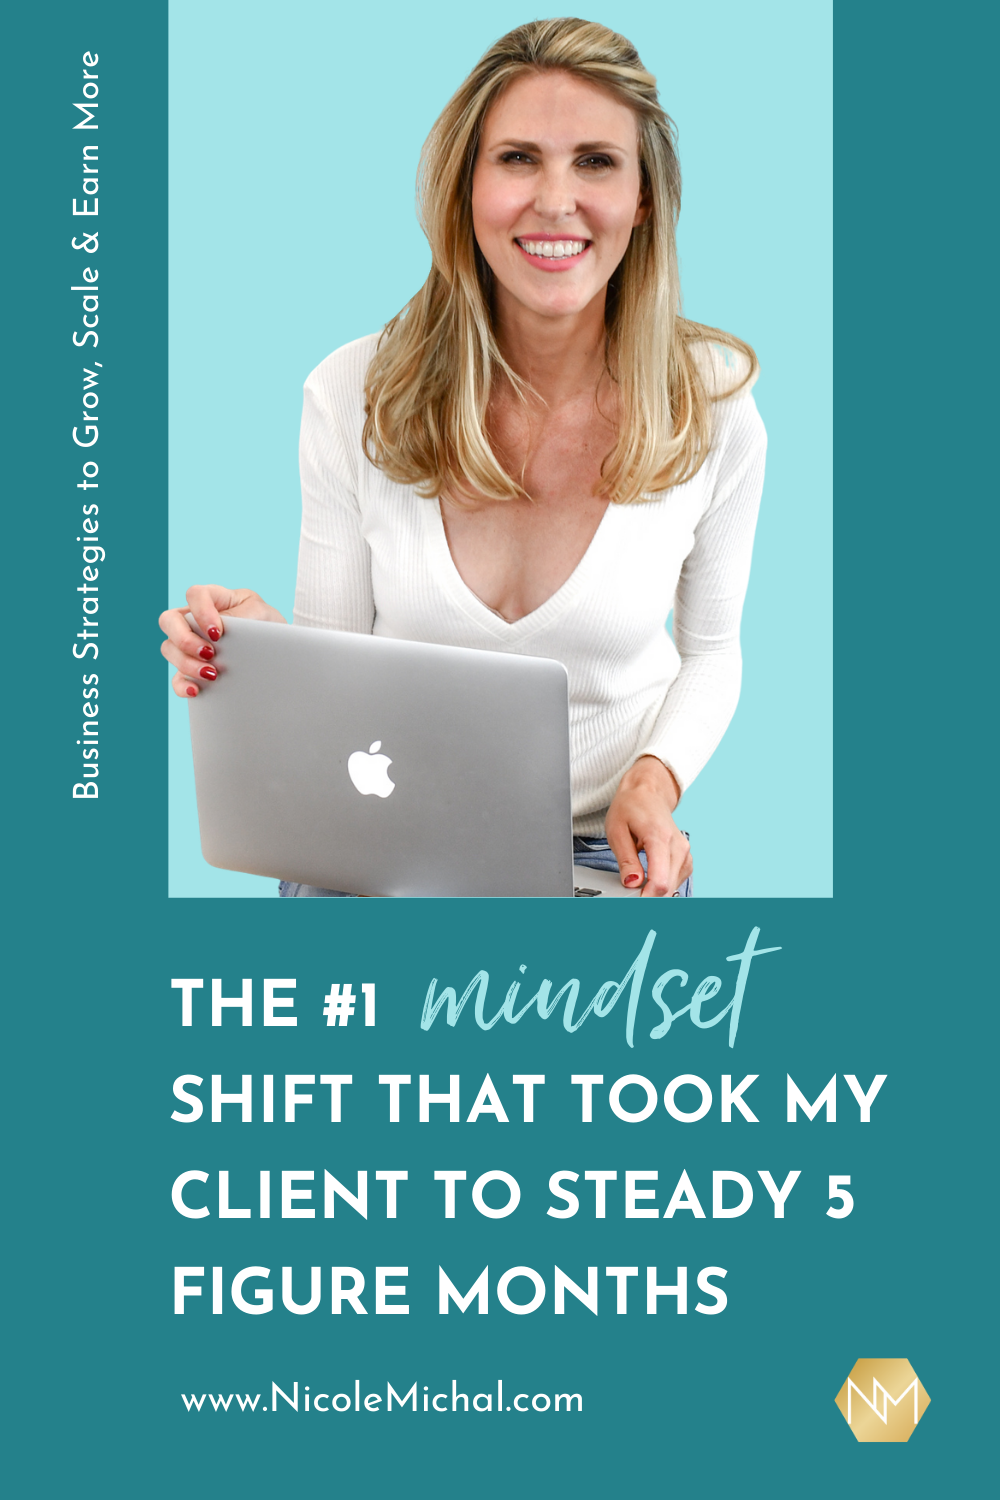 The #1 Mindset Shift that Took my Client to Steady 5 Figure Months